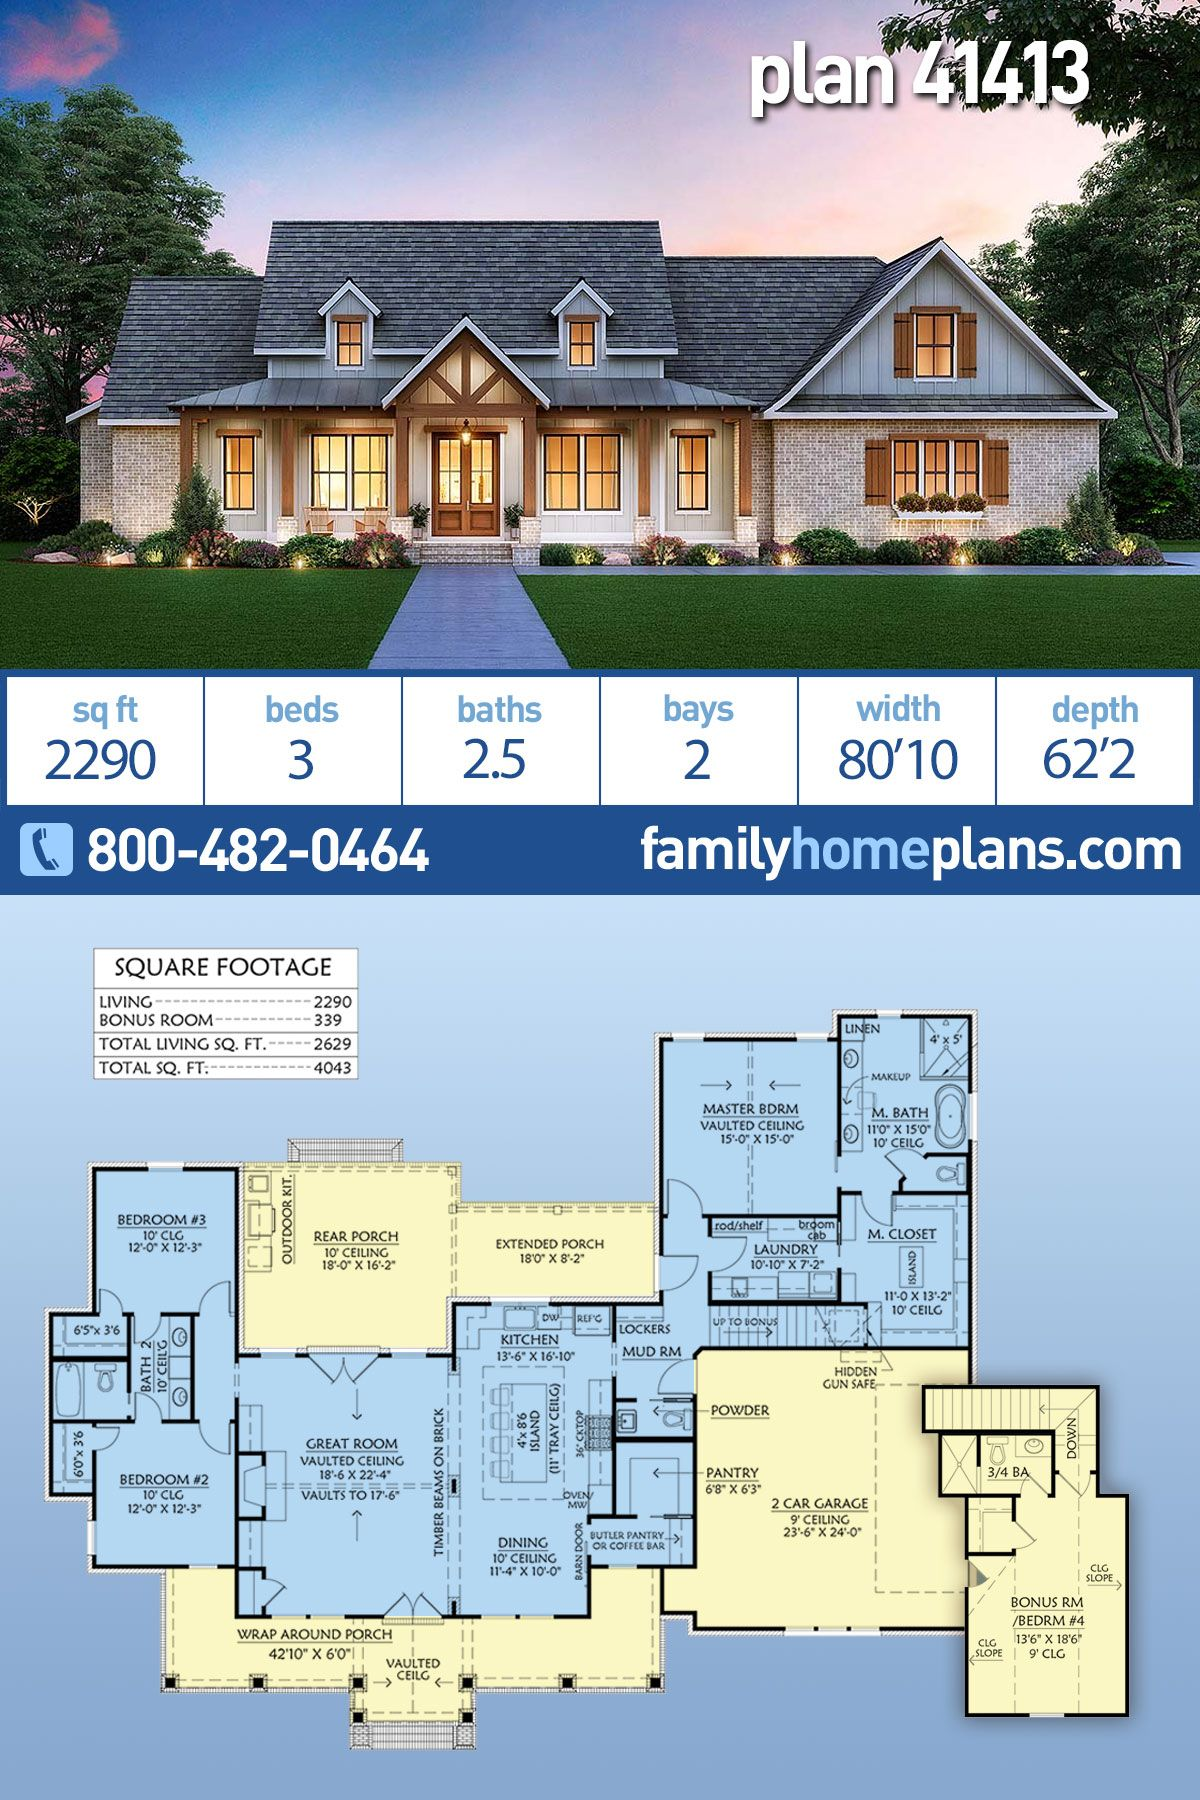 Farmhouse Home Plan 41413 Is 2290 Sq Ft 3 Bedrooms 2 5 Bathrooms And An Outdoor Kitc Craftsman House Plans Craftsman Style House Plans House Plans Farmhouse